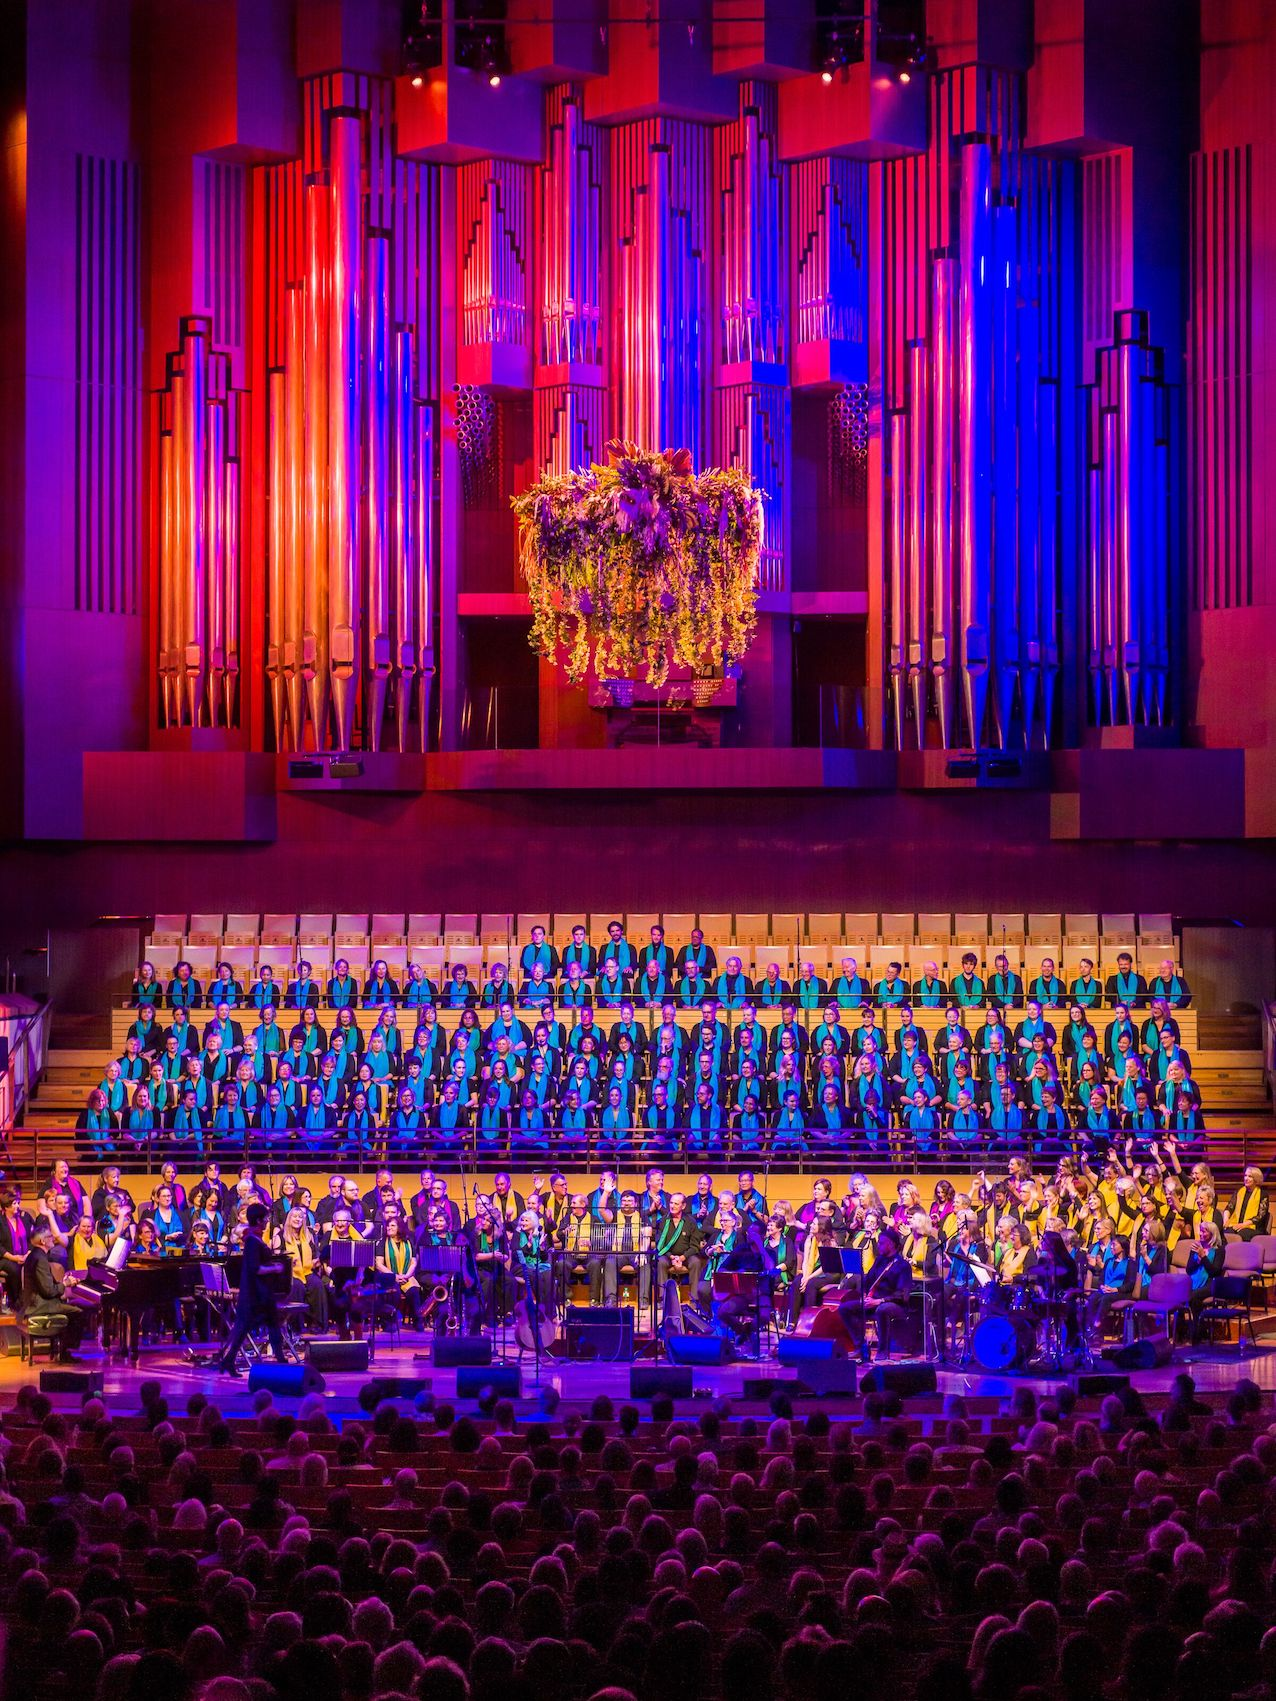 QPAC's Micah Projects Partnership brings the power of arts to heal into the spotlight.